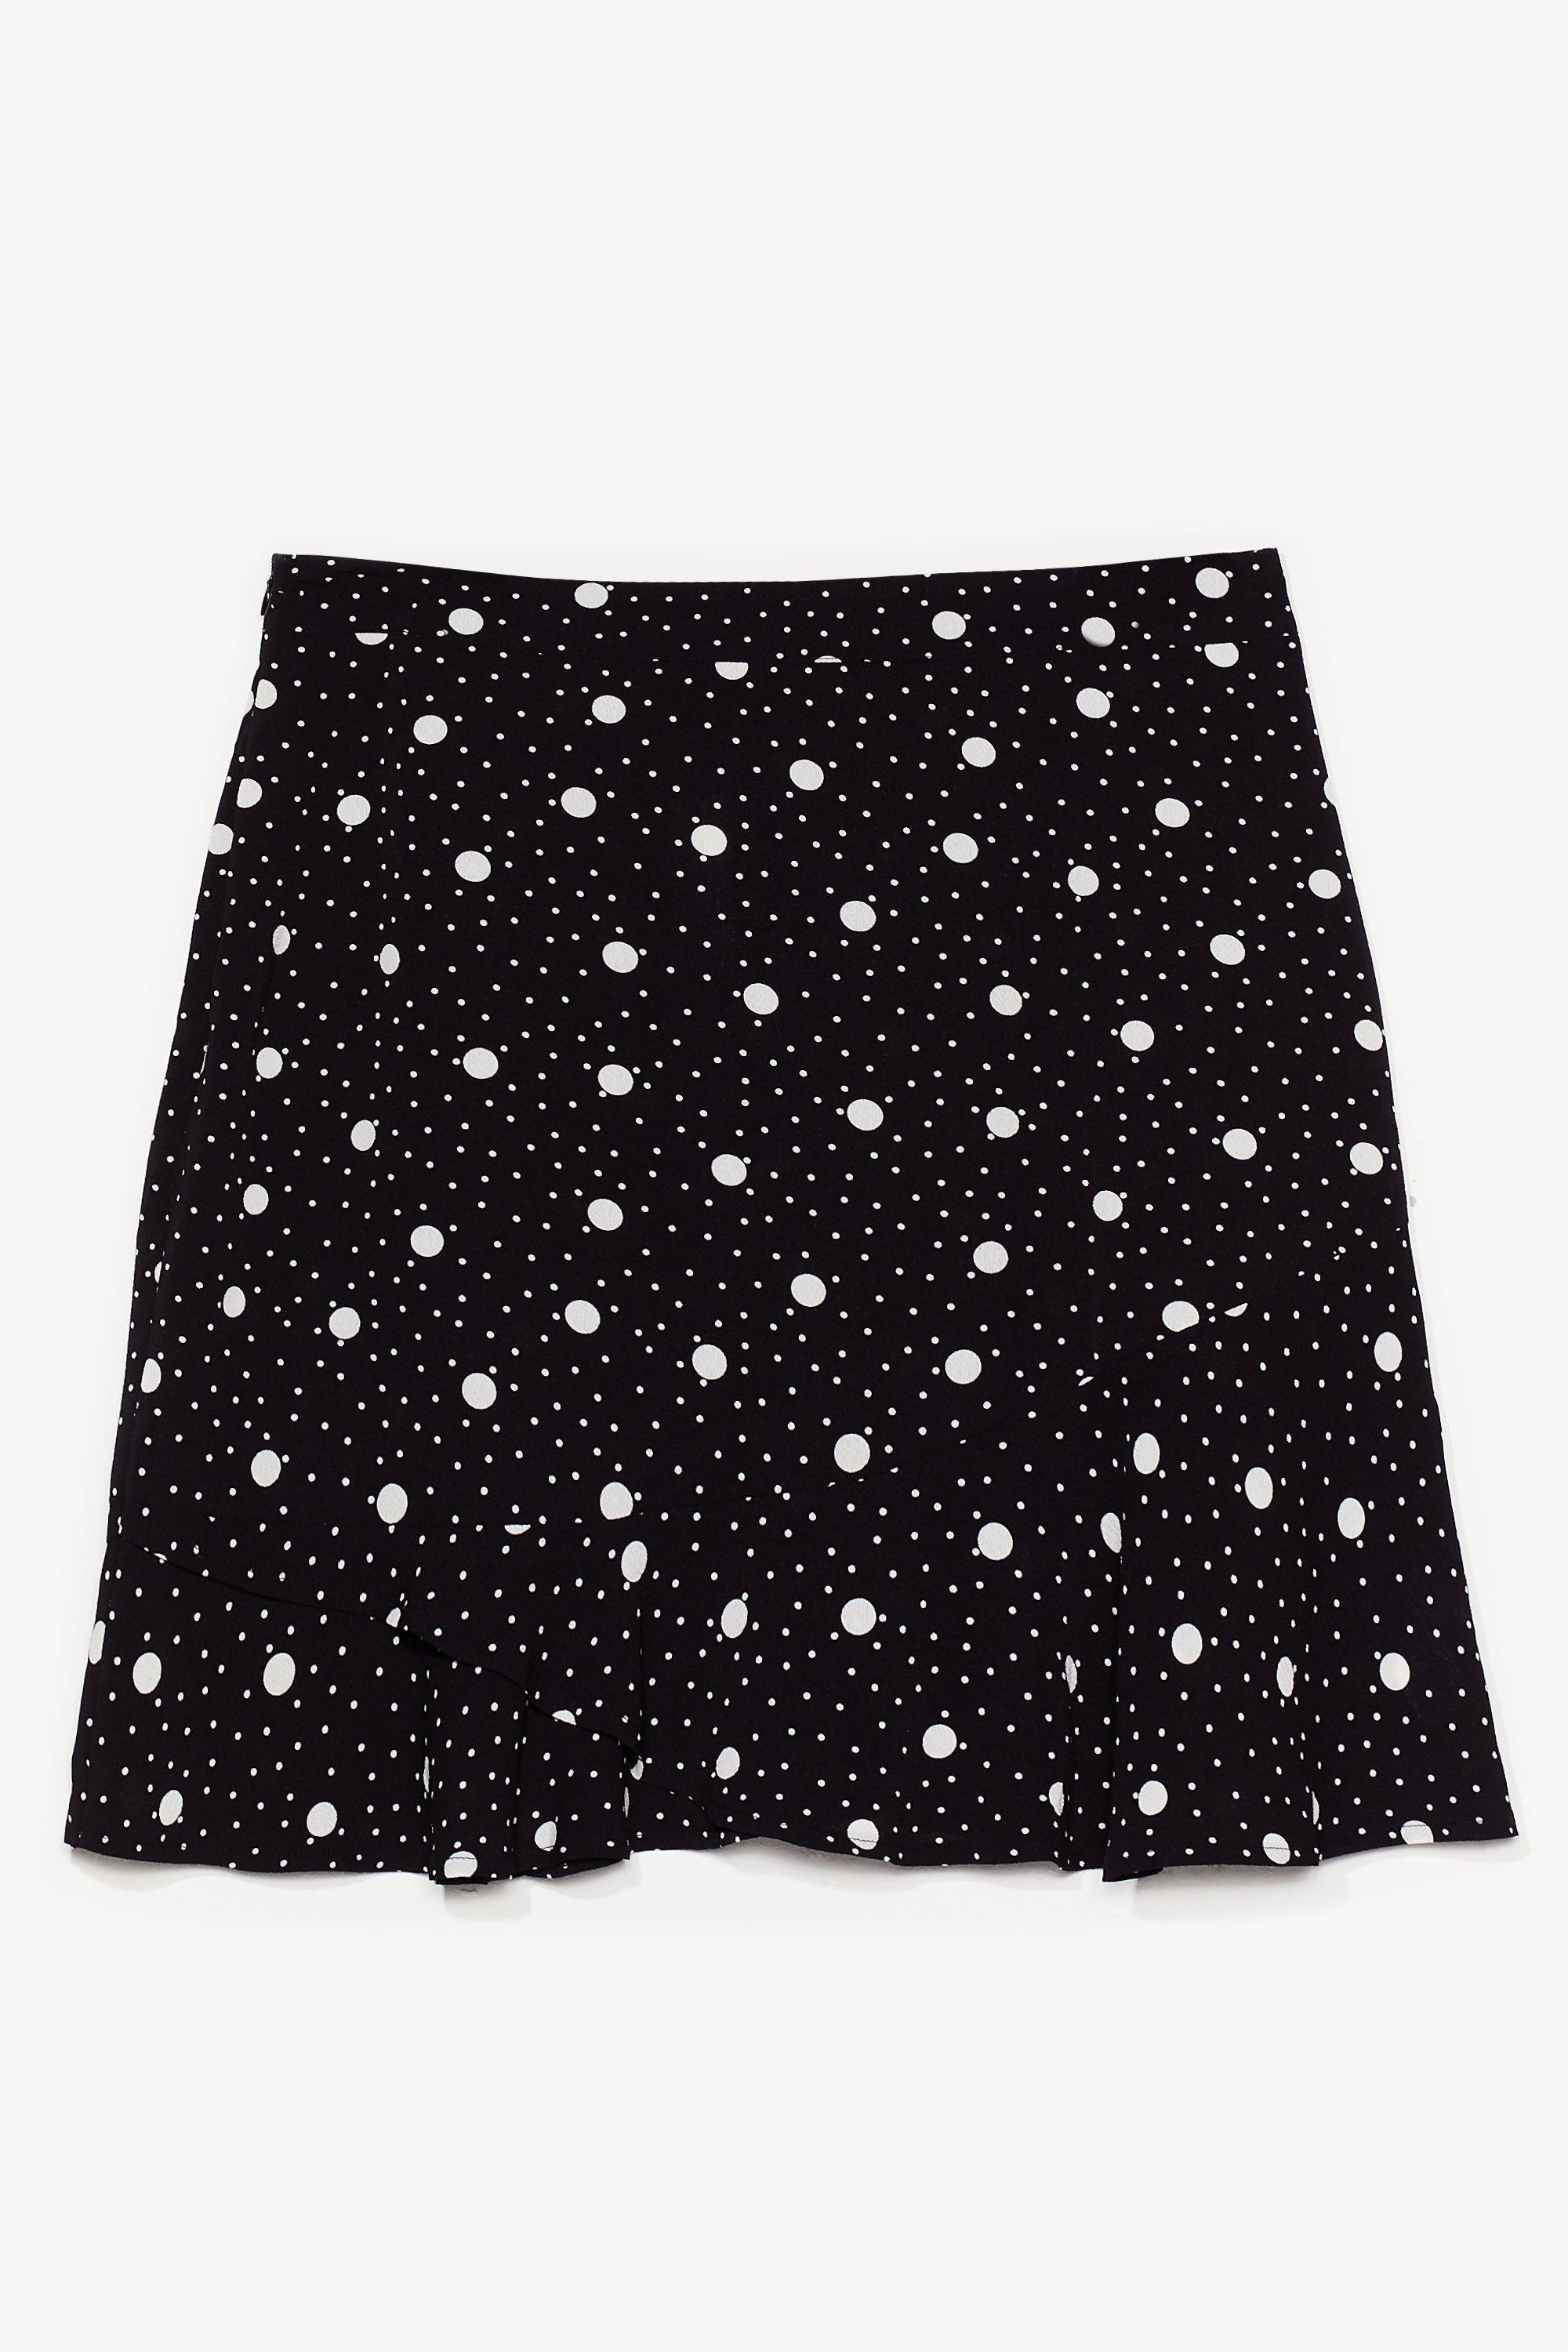 It's Polka Dot Easy Plus Mini Skirt 14